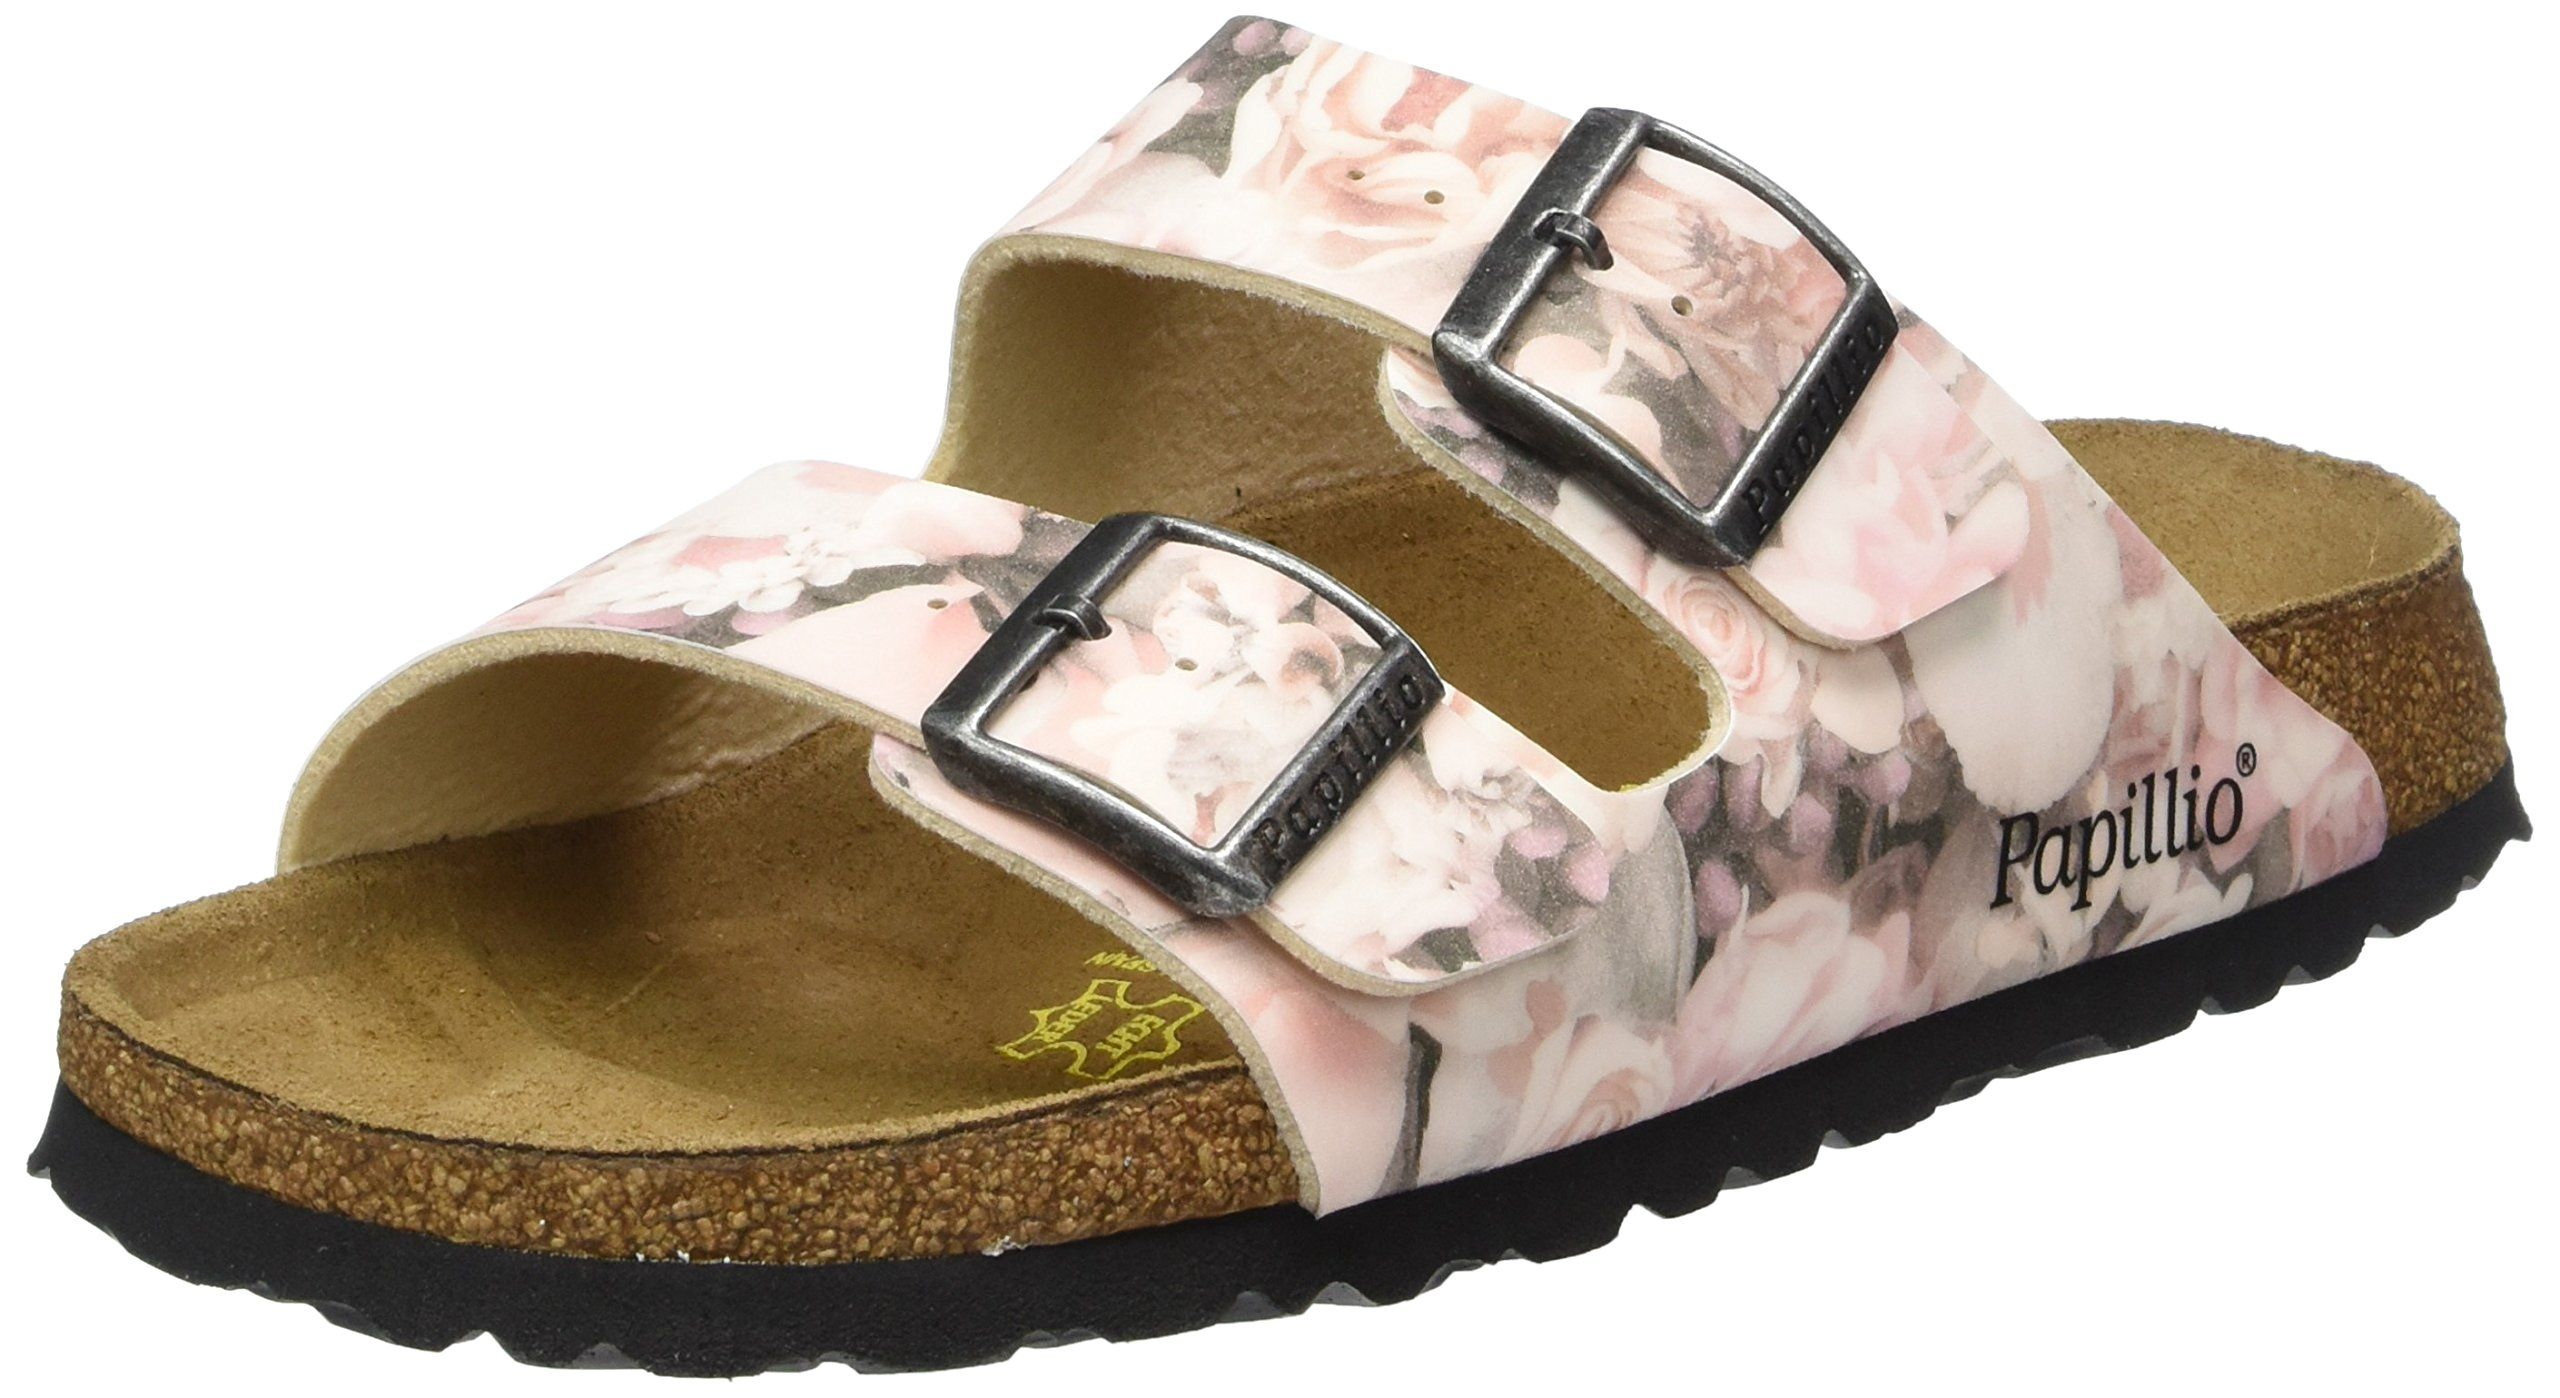 Birkenstock Arizona 364133 Narrow Fit Silky Rose Pink Womens Sandals 39 Eu Birko Flor Upper Cork Footbed Cork Footbed Sandals Birkenstock Footbed Sandals